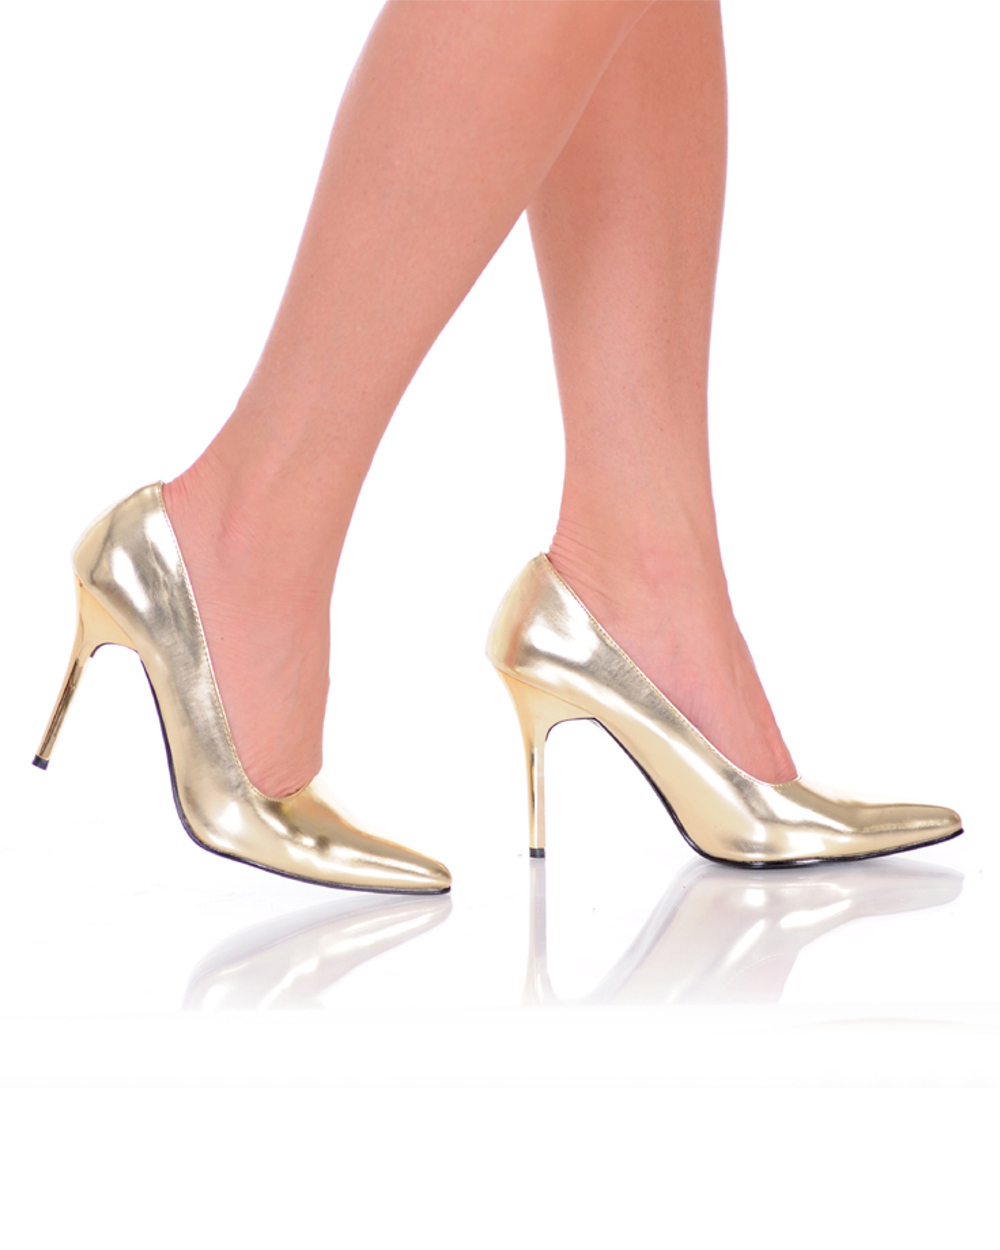 CLASSIC, 4'' Women's Classic Pump Shoes